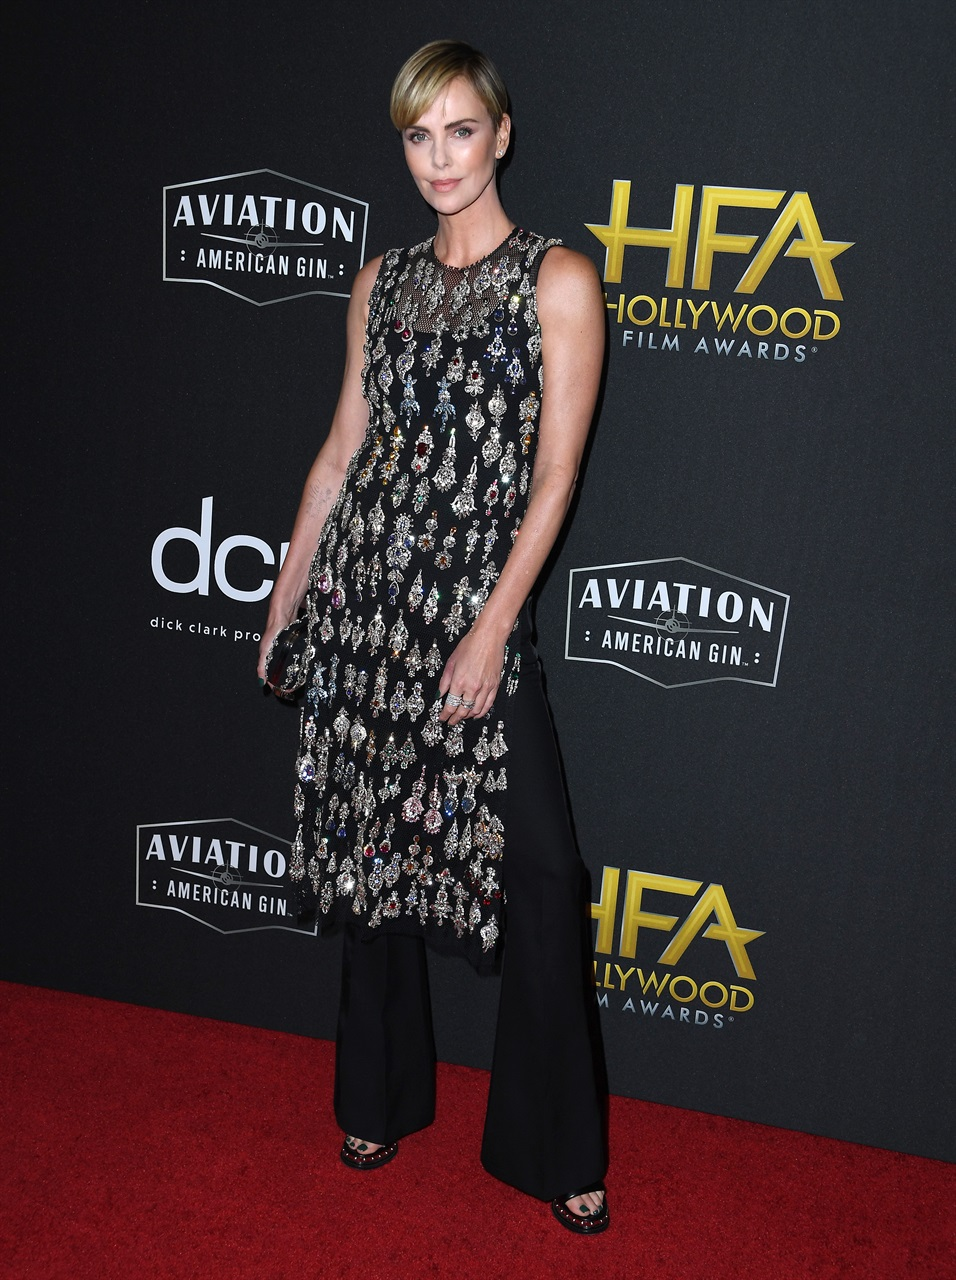 Hollywood Film Awards, who dressed who